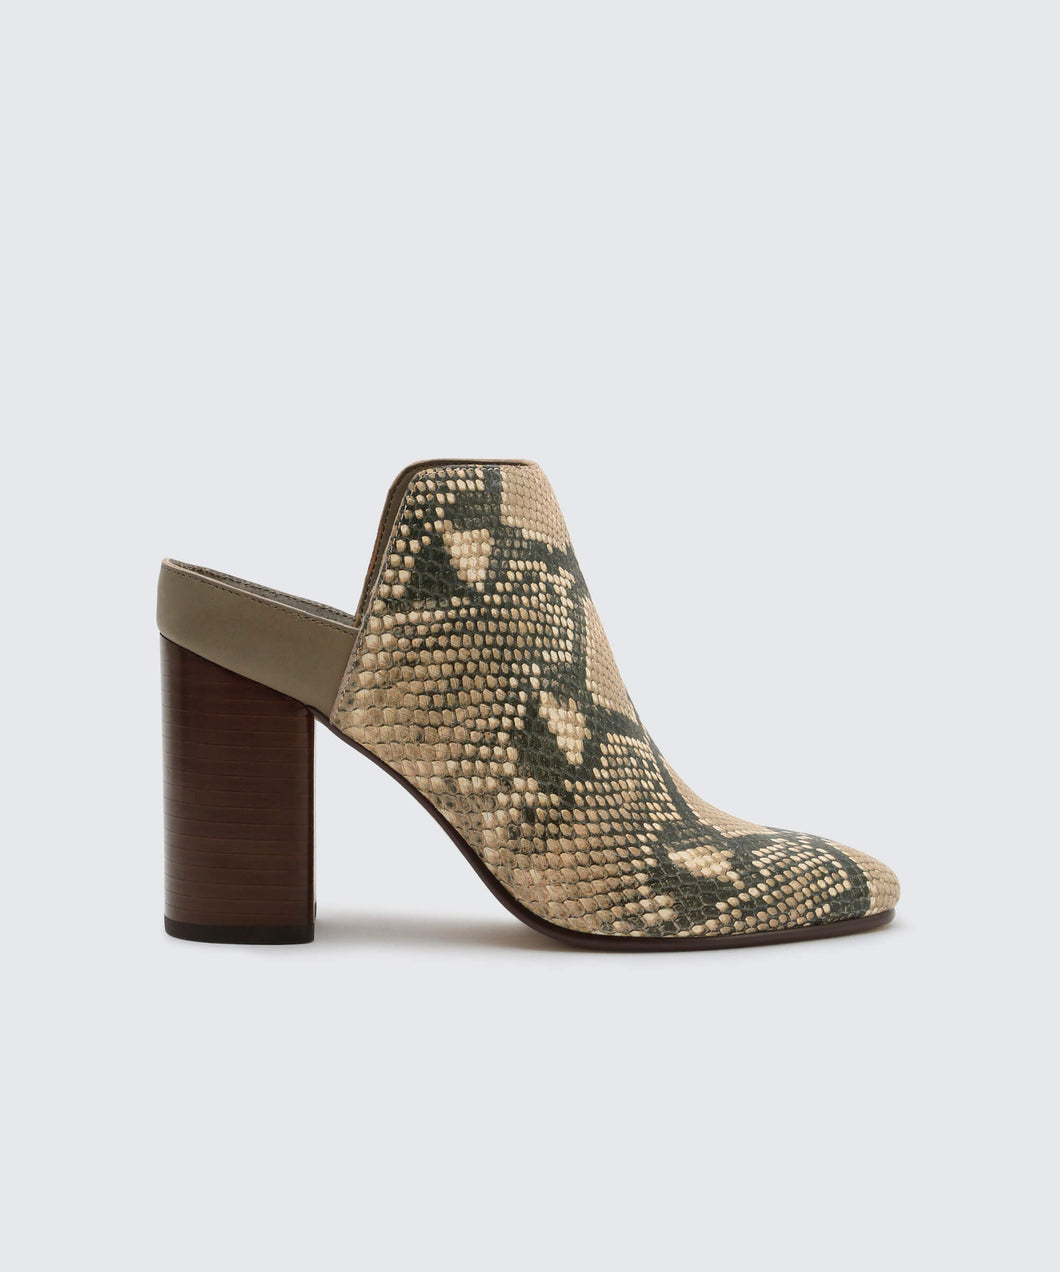 RENLY BOOTIES IN SNAKE -   Dolce Vita